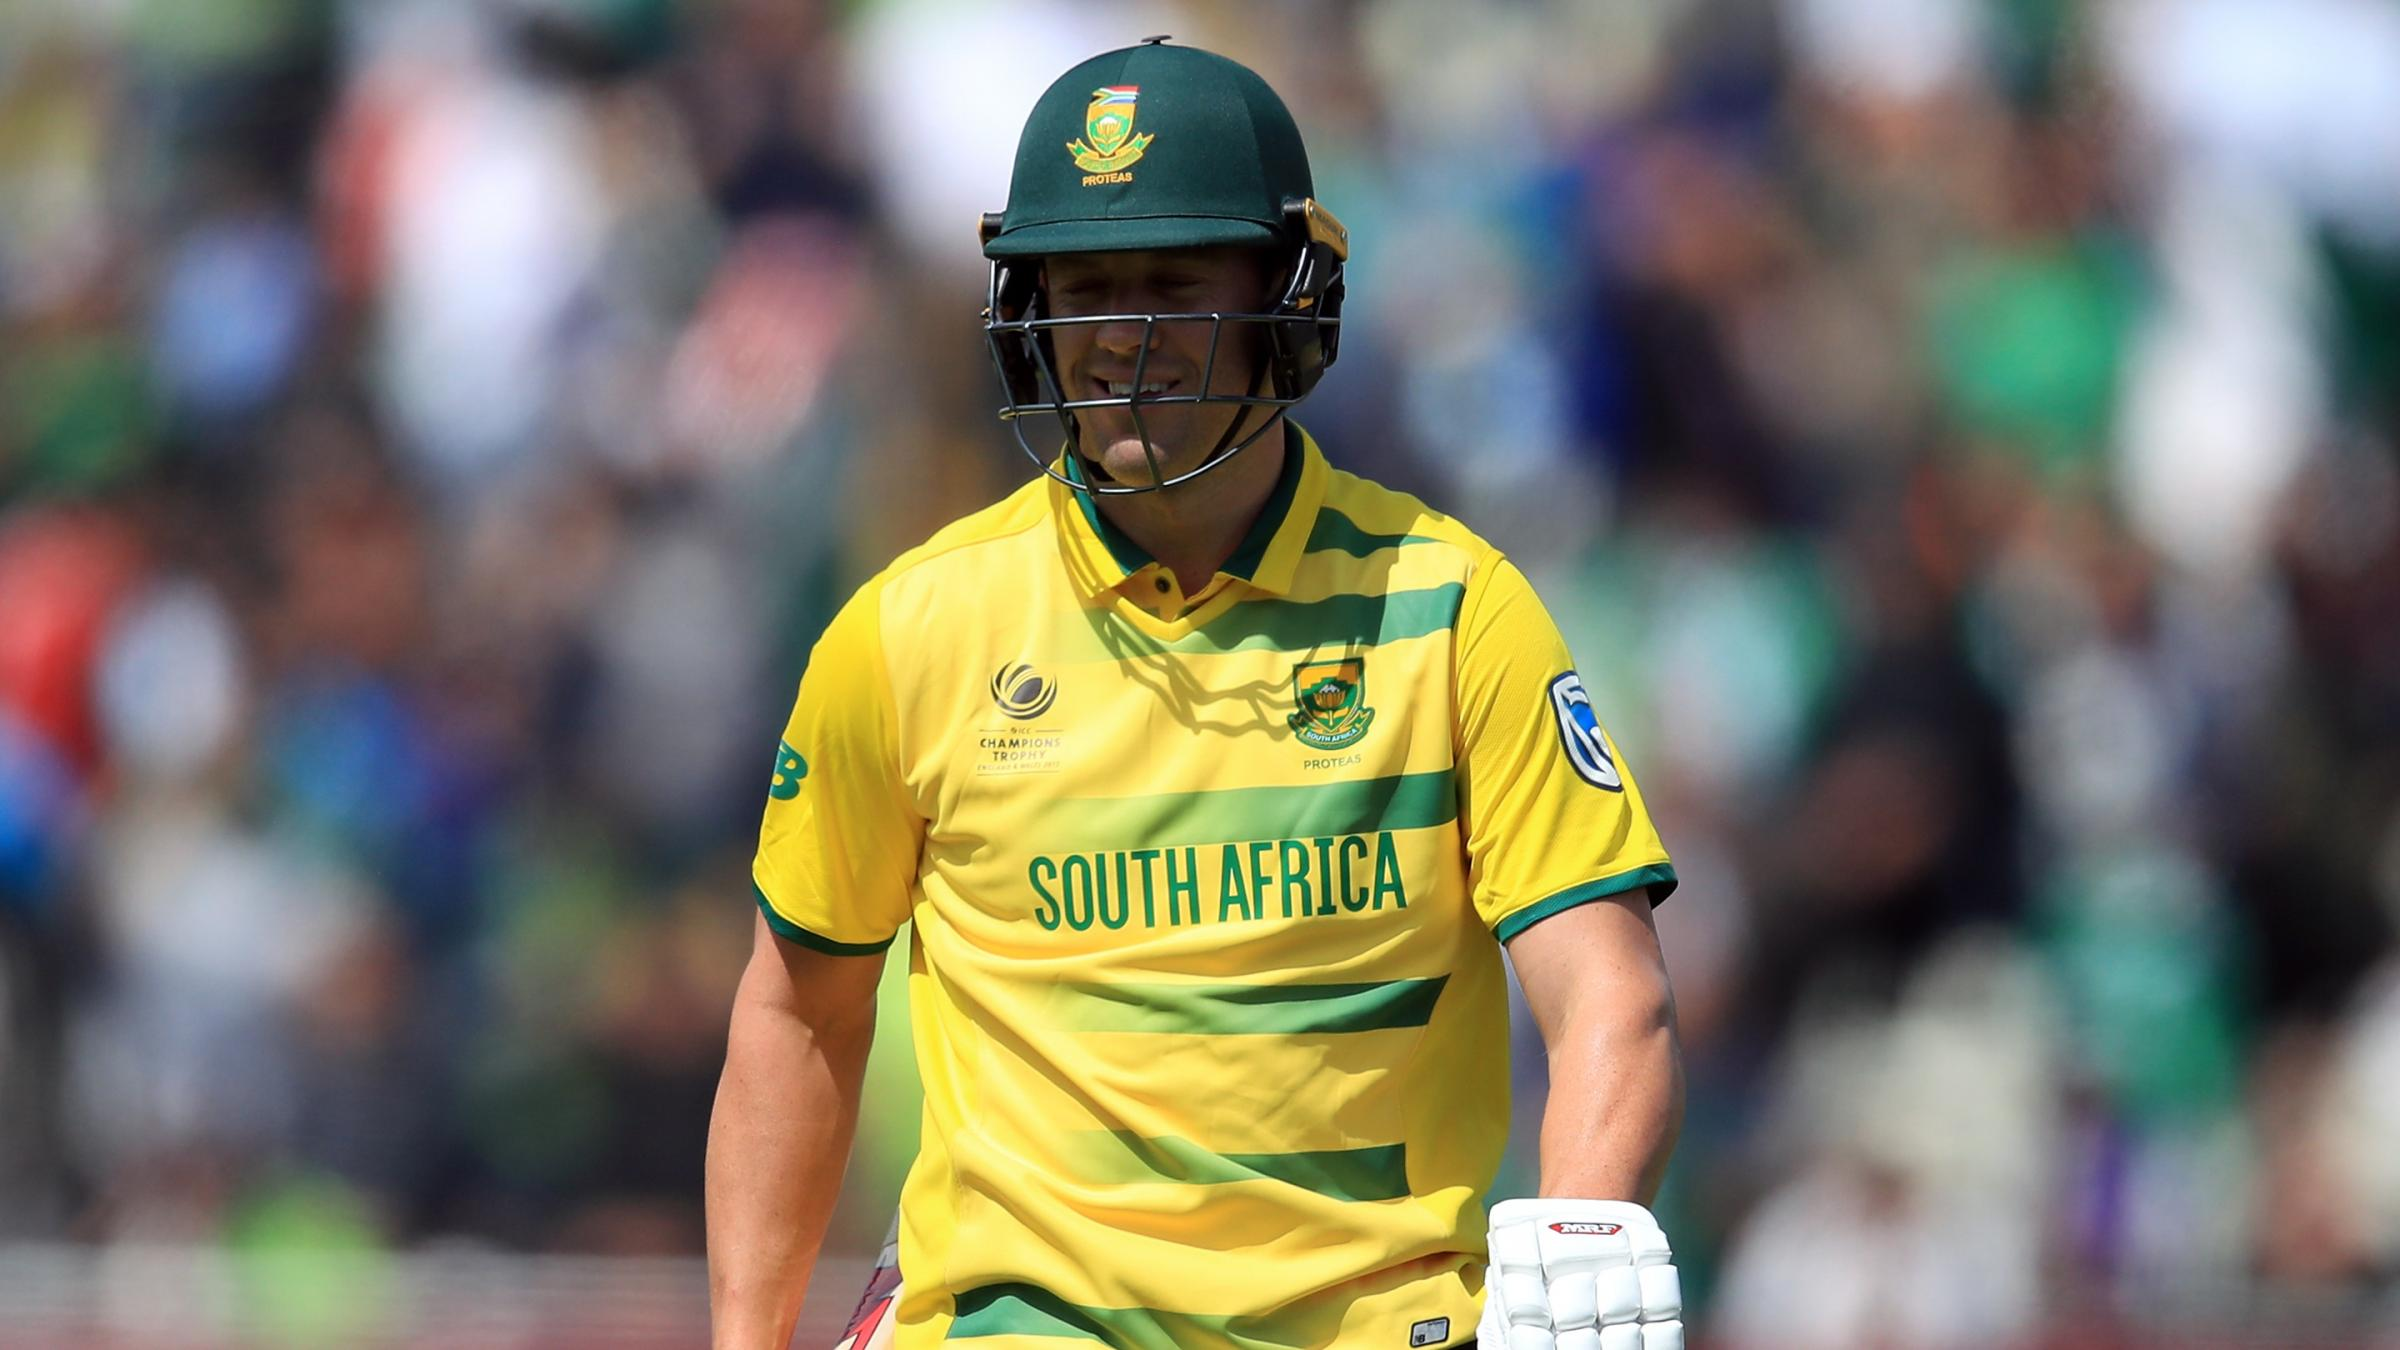 De Villiers confident of leading South Africa in 2019 World Cup